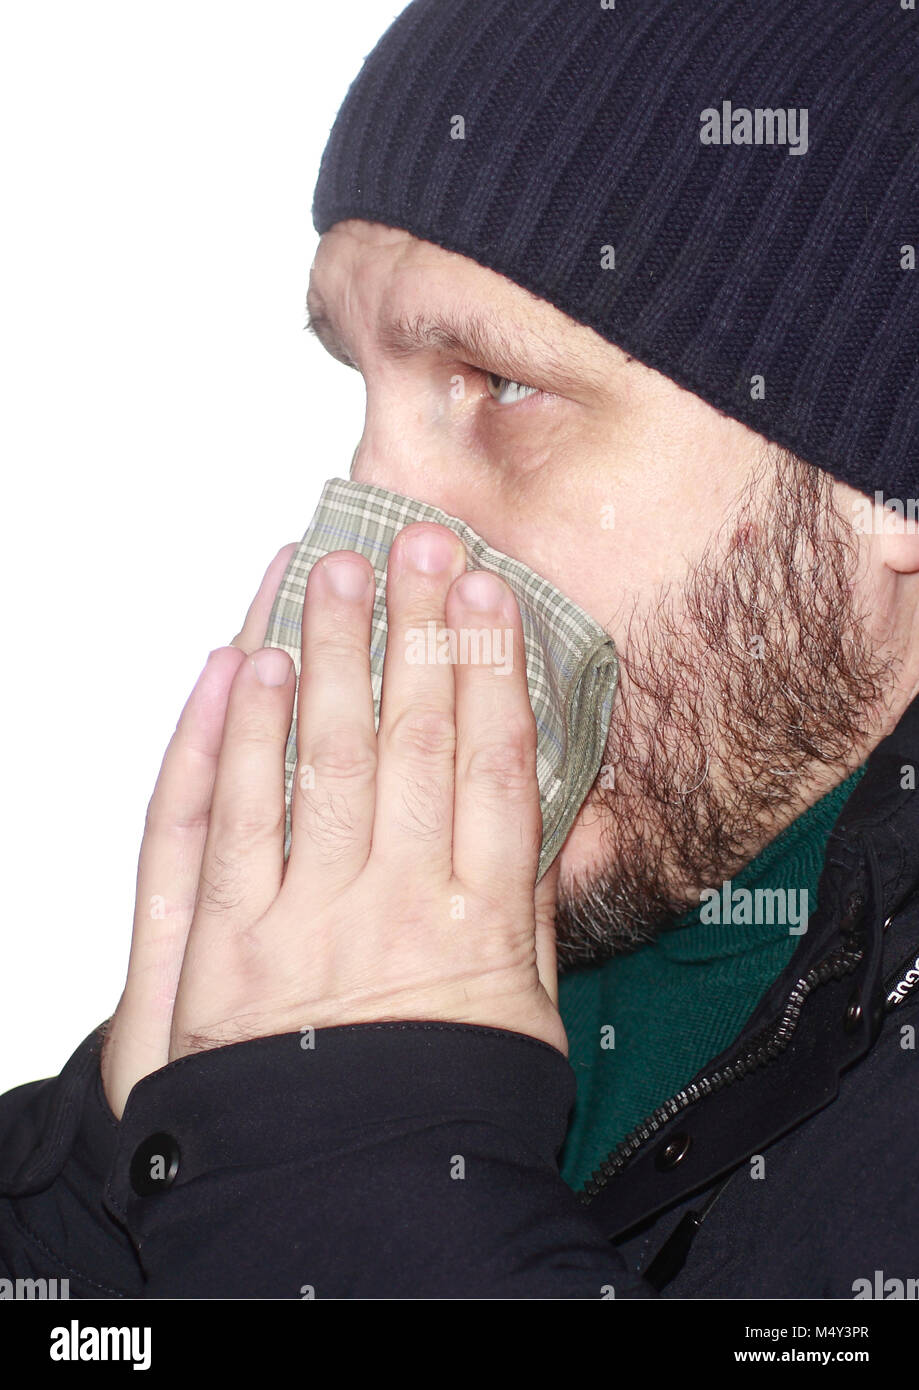 Sick bearded man blowing his nose in a handkerchief - Stock Image